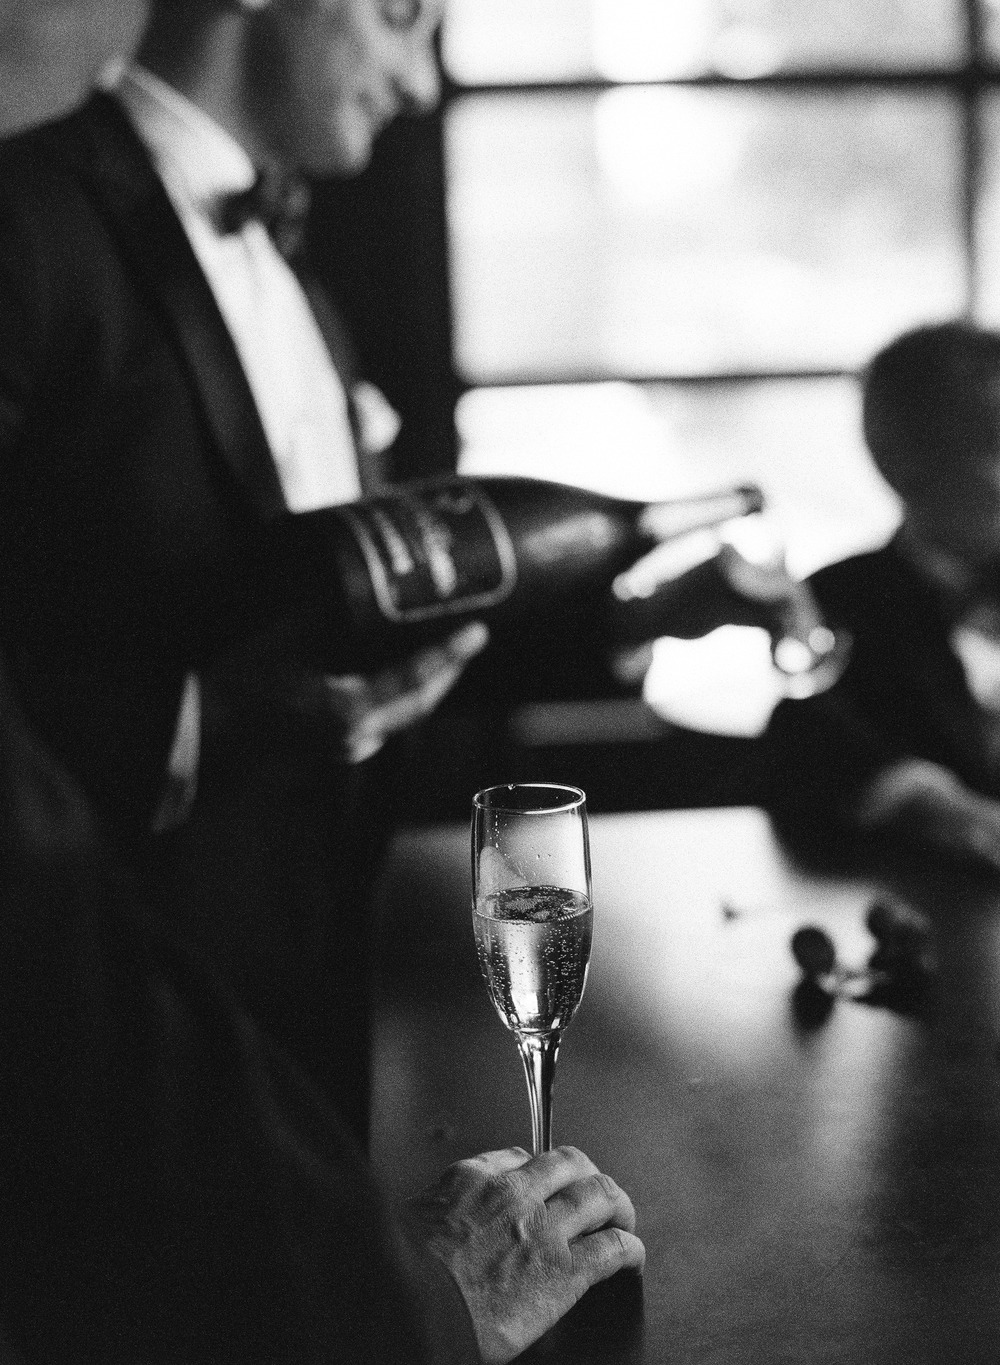 Destination Wedding Photographer Lexia Frank is a film photographer on the west coast specializing in luxury weddings and fine art film photography. In this article she writes a letter to the groom, and talks about the groom's role in photography. a groom pours a glass a champagne at the Iron Horse Inn in Milwaukee Wisconsin before his wedding at the Villa Terrace Milwaukee Wisconsin.  www.lexiafrank.com